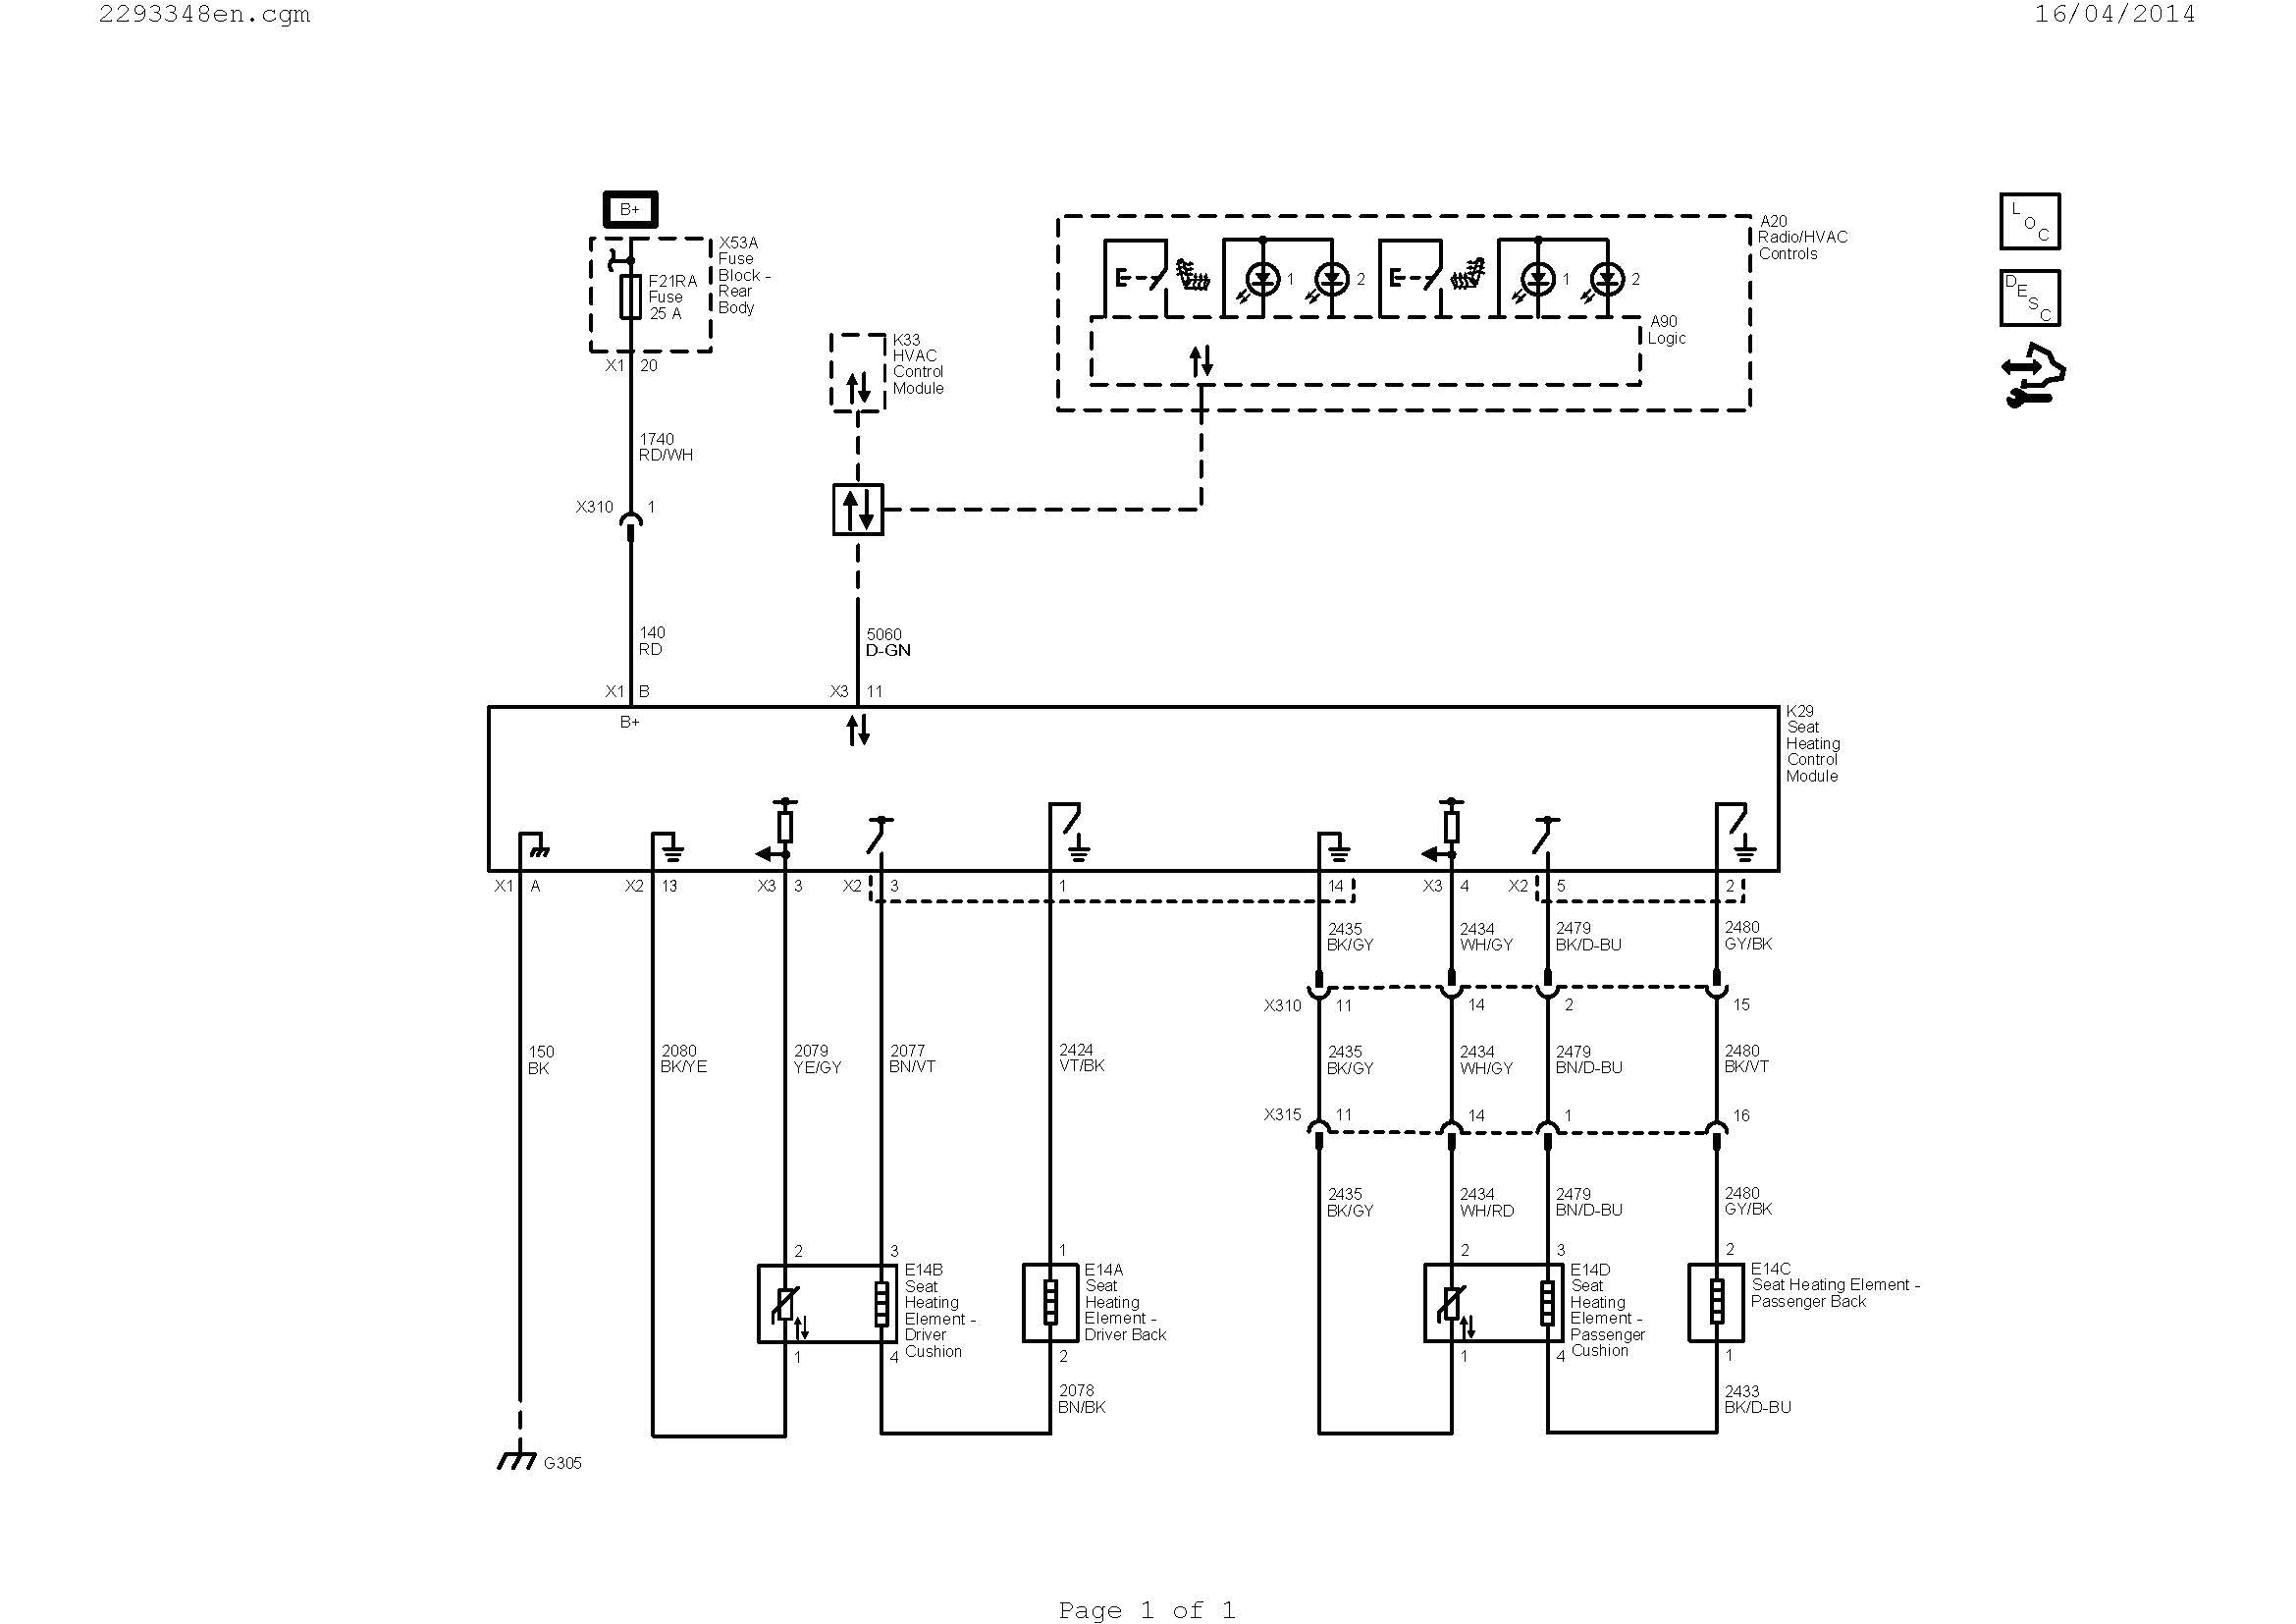 Ac thermostat Wiring Diagram Wiring Diagram for thermostat to Furnace Sample